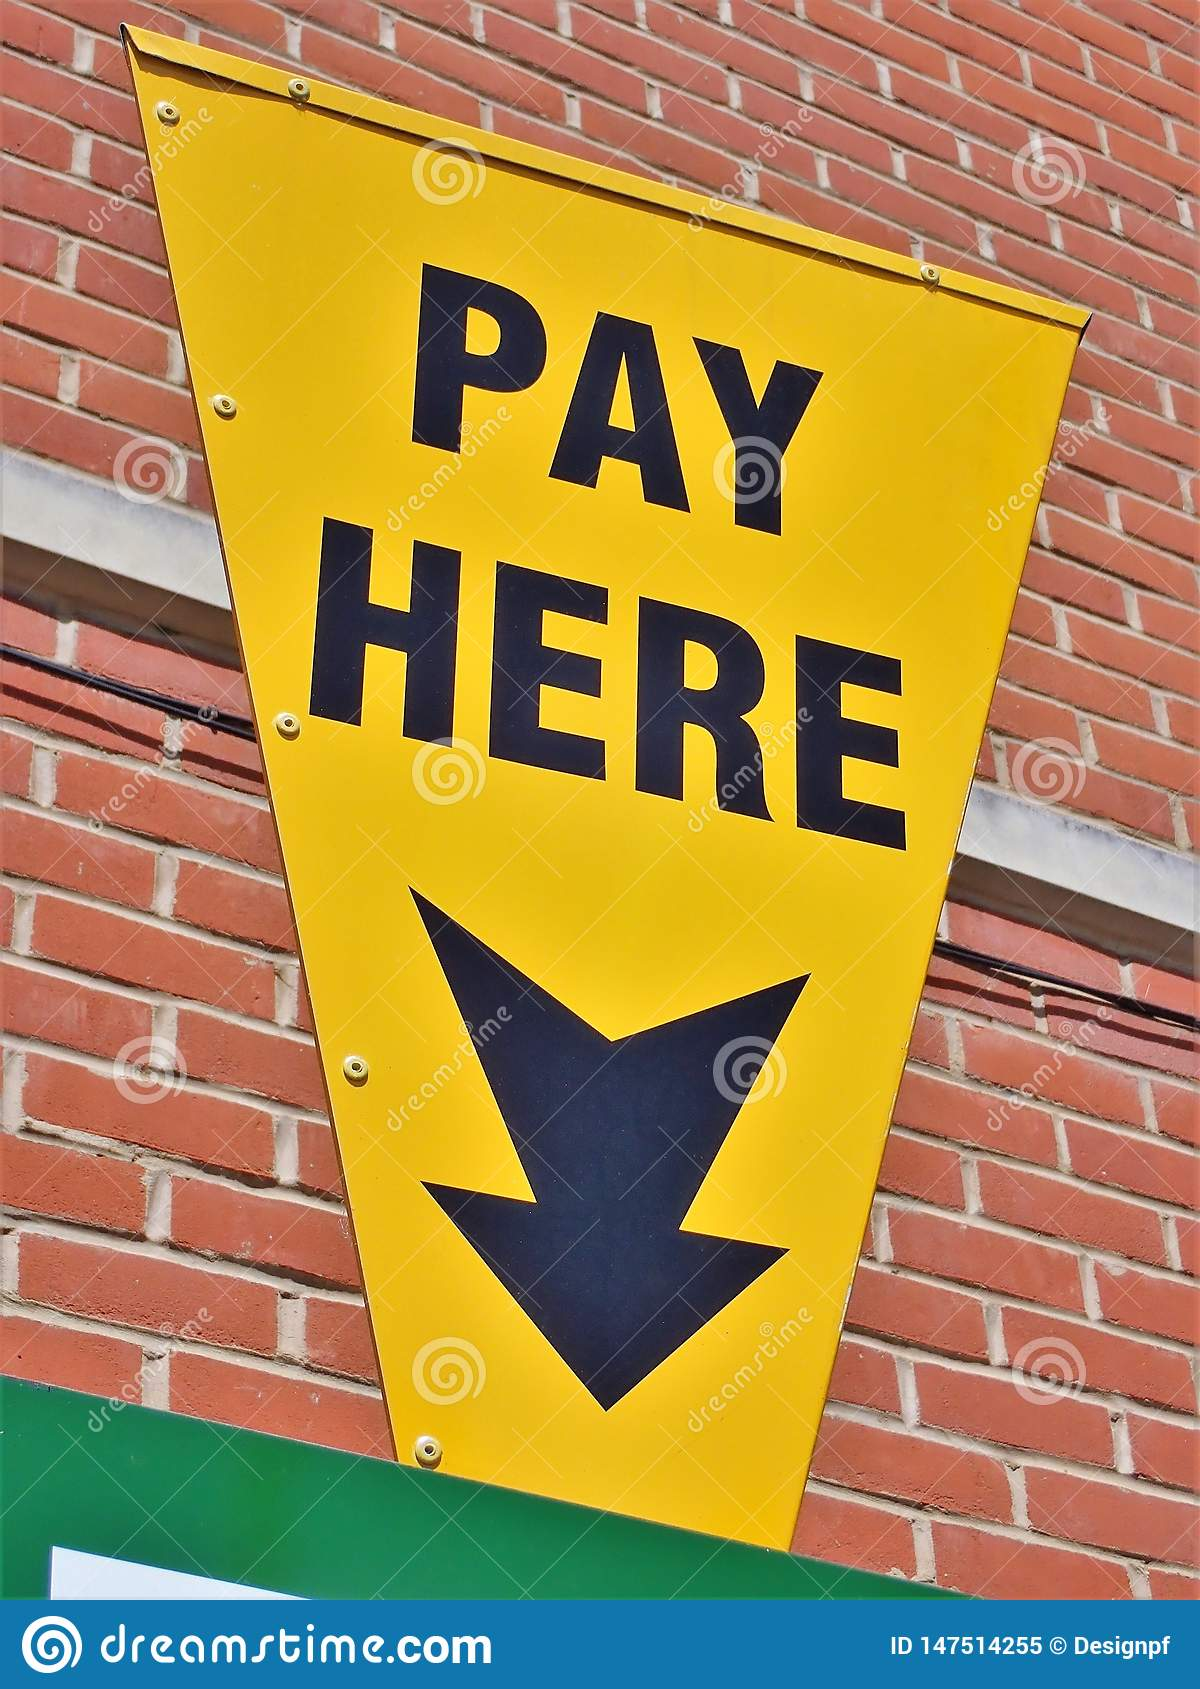 Yellow car parking sign with an arrow and text pay here